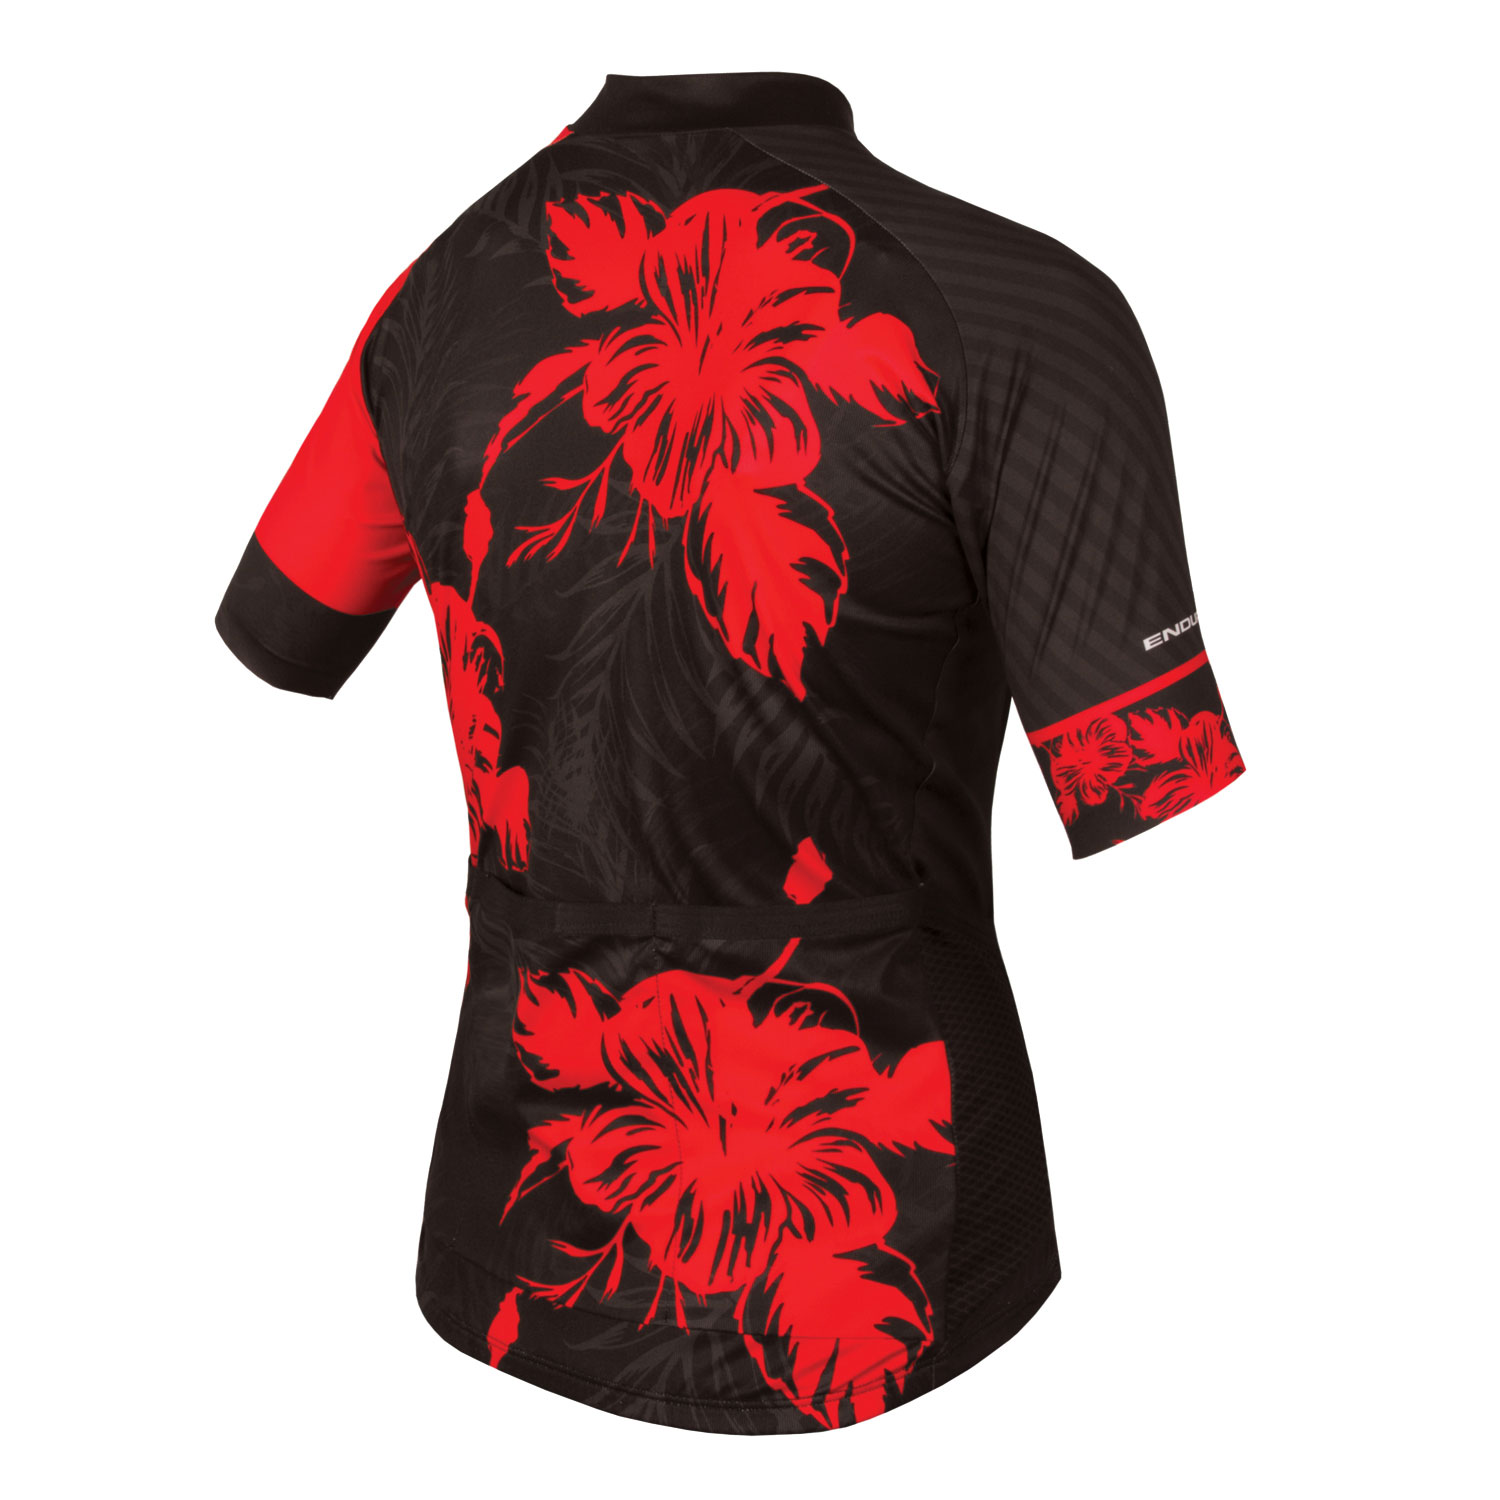 Wms Botanix Graphics S/S Jersey Red